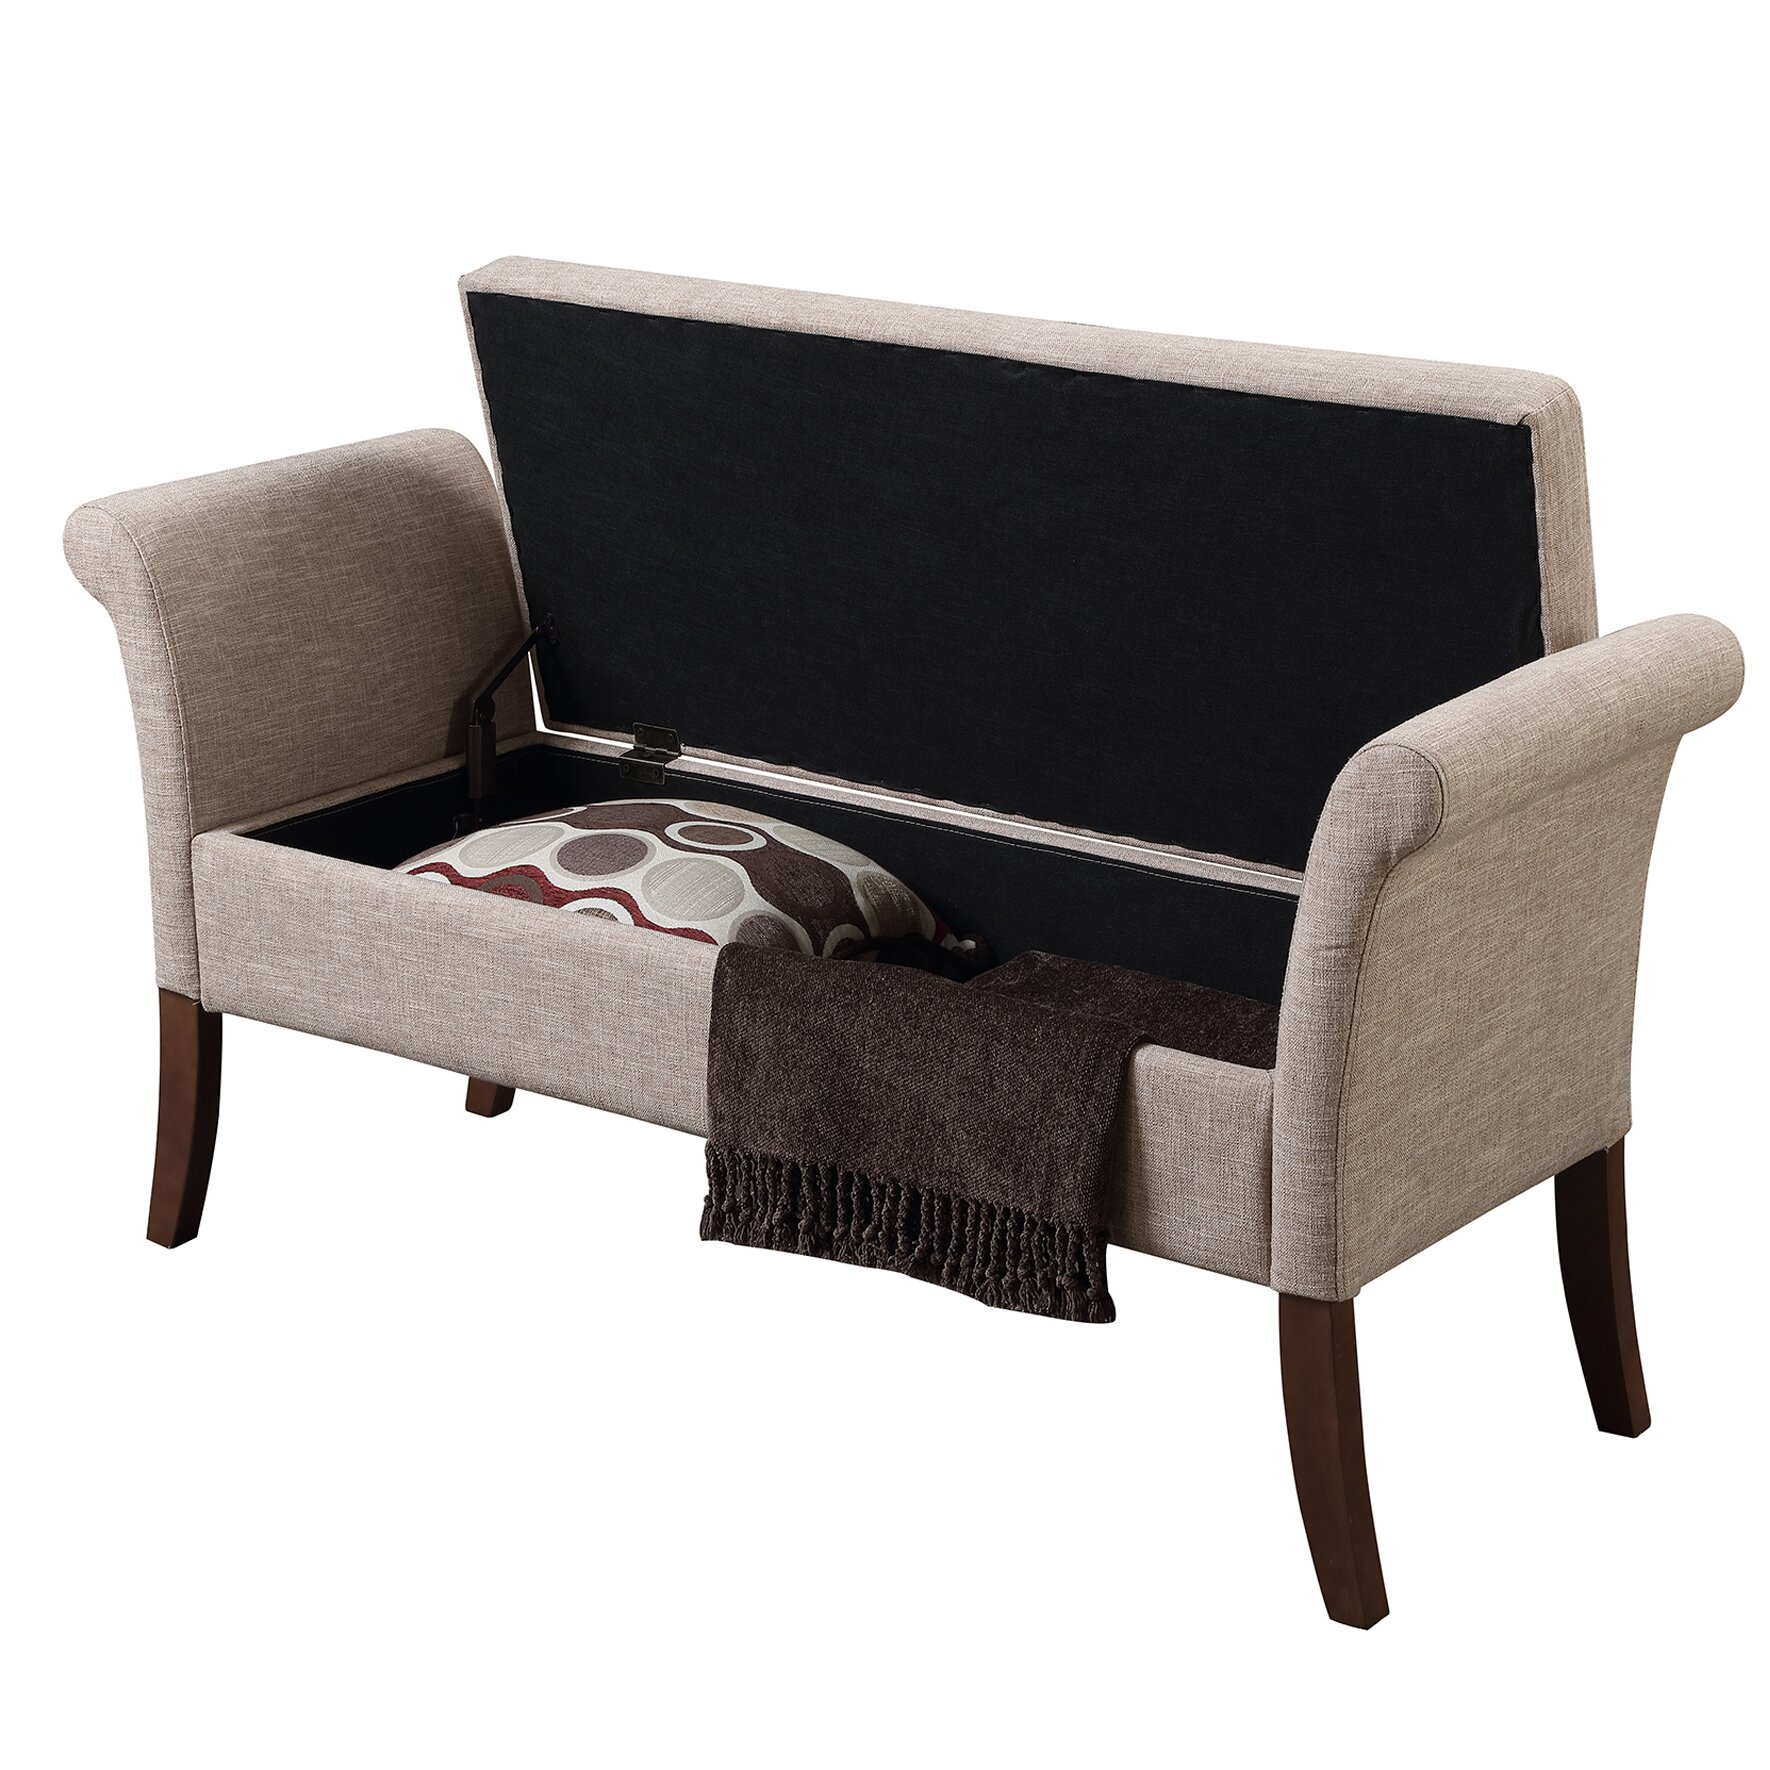 Hokku Designs Revionna Two Seat Bench With Storage: Charlton Home Richland Two Seat Storage Bedroom Bench